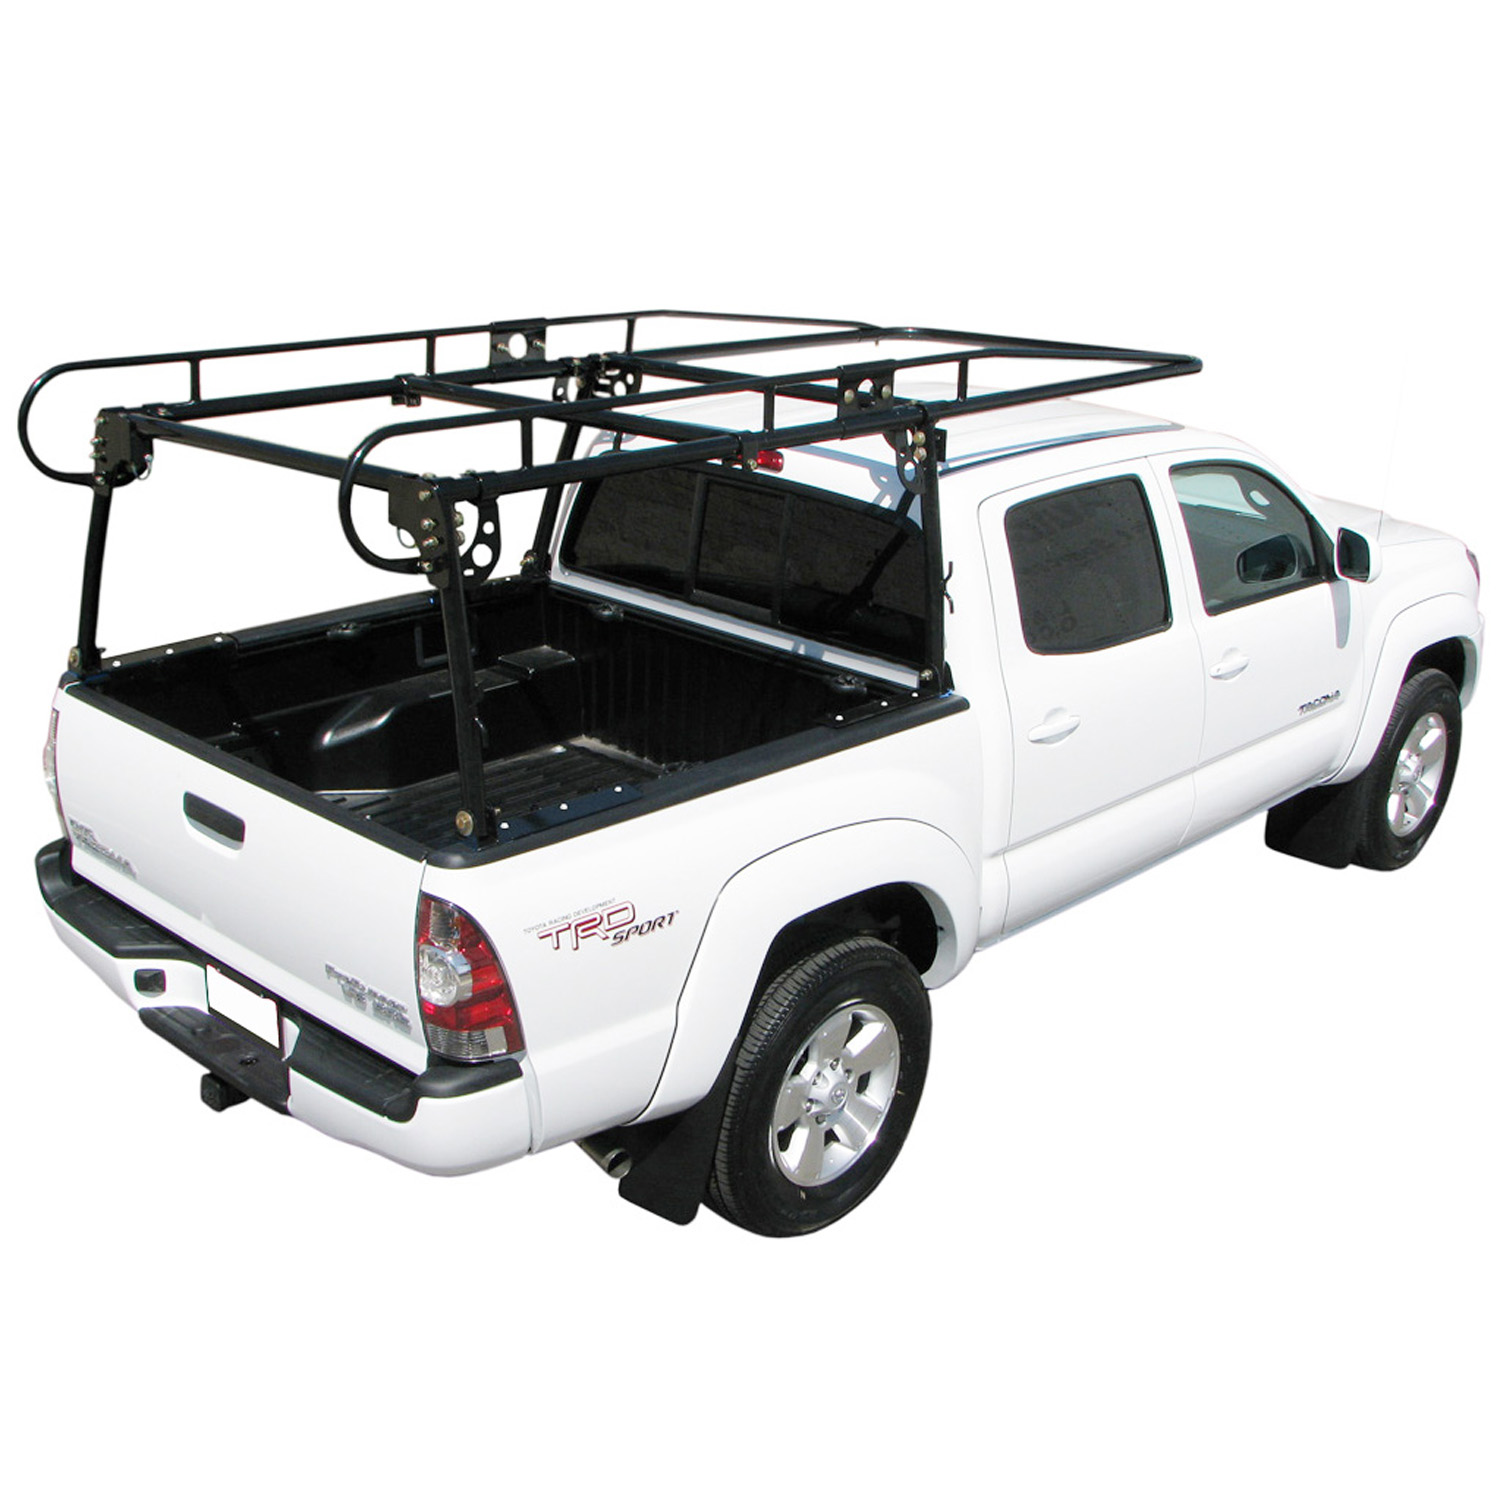 16601 Paramount Workforce Ladder Rack 1000 Pound Capacity